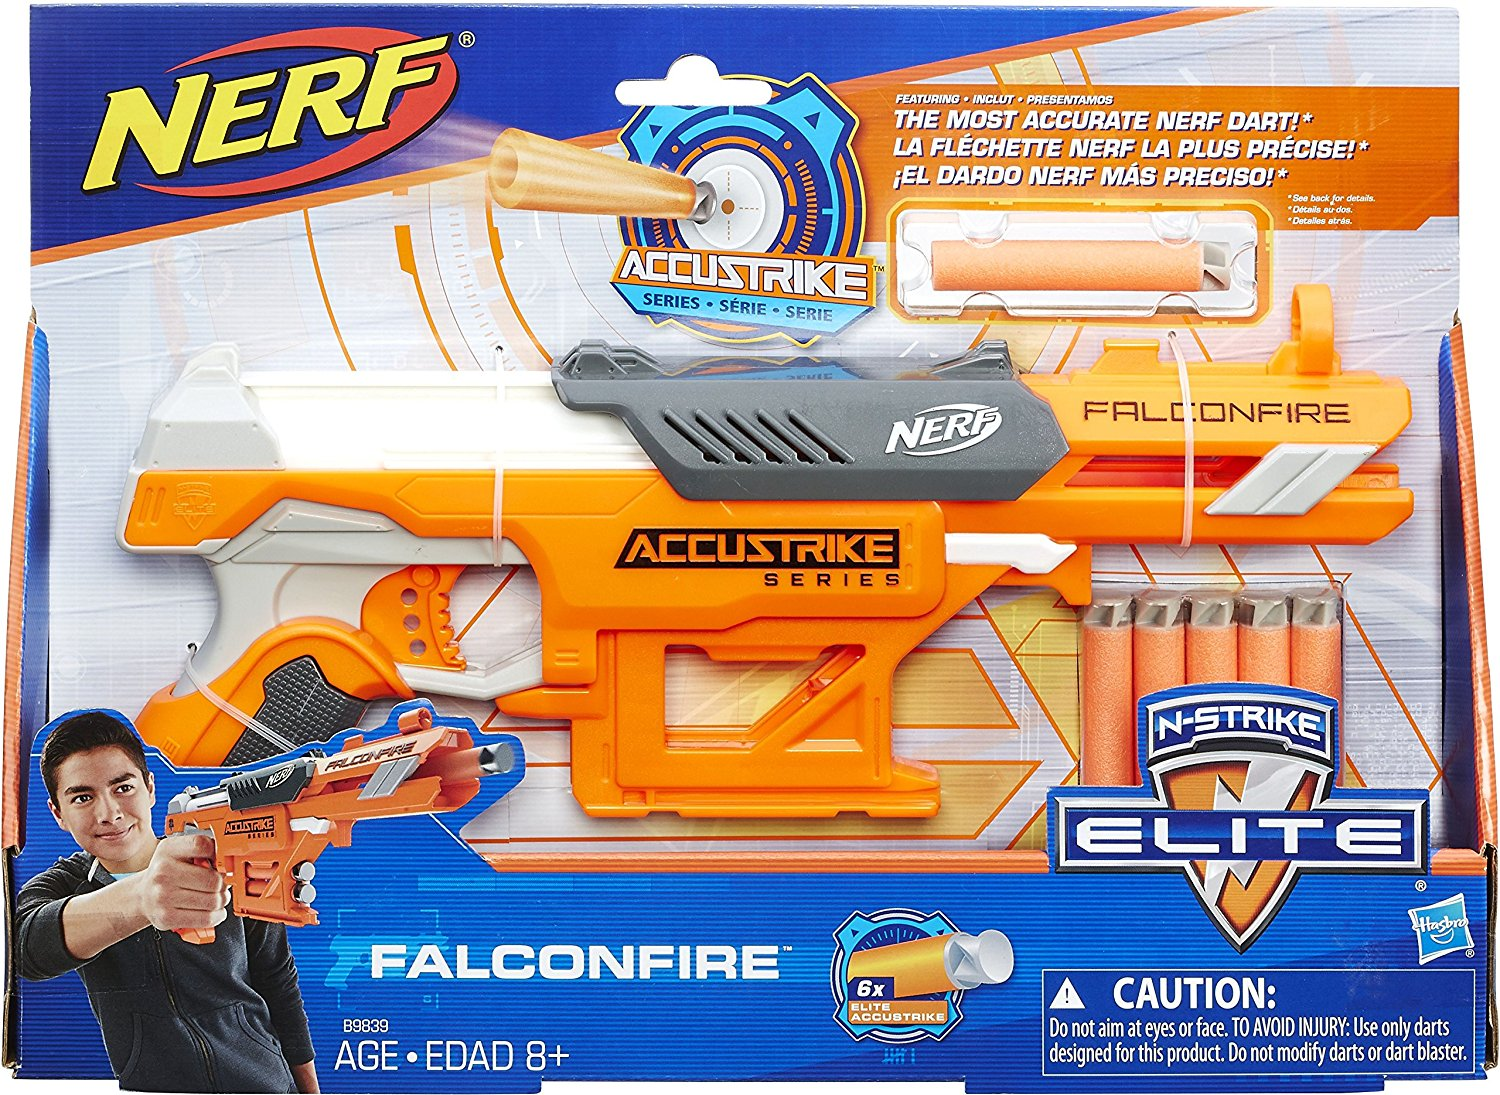 Hasbro Nerf Accustrike amazon